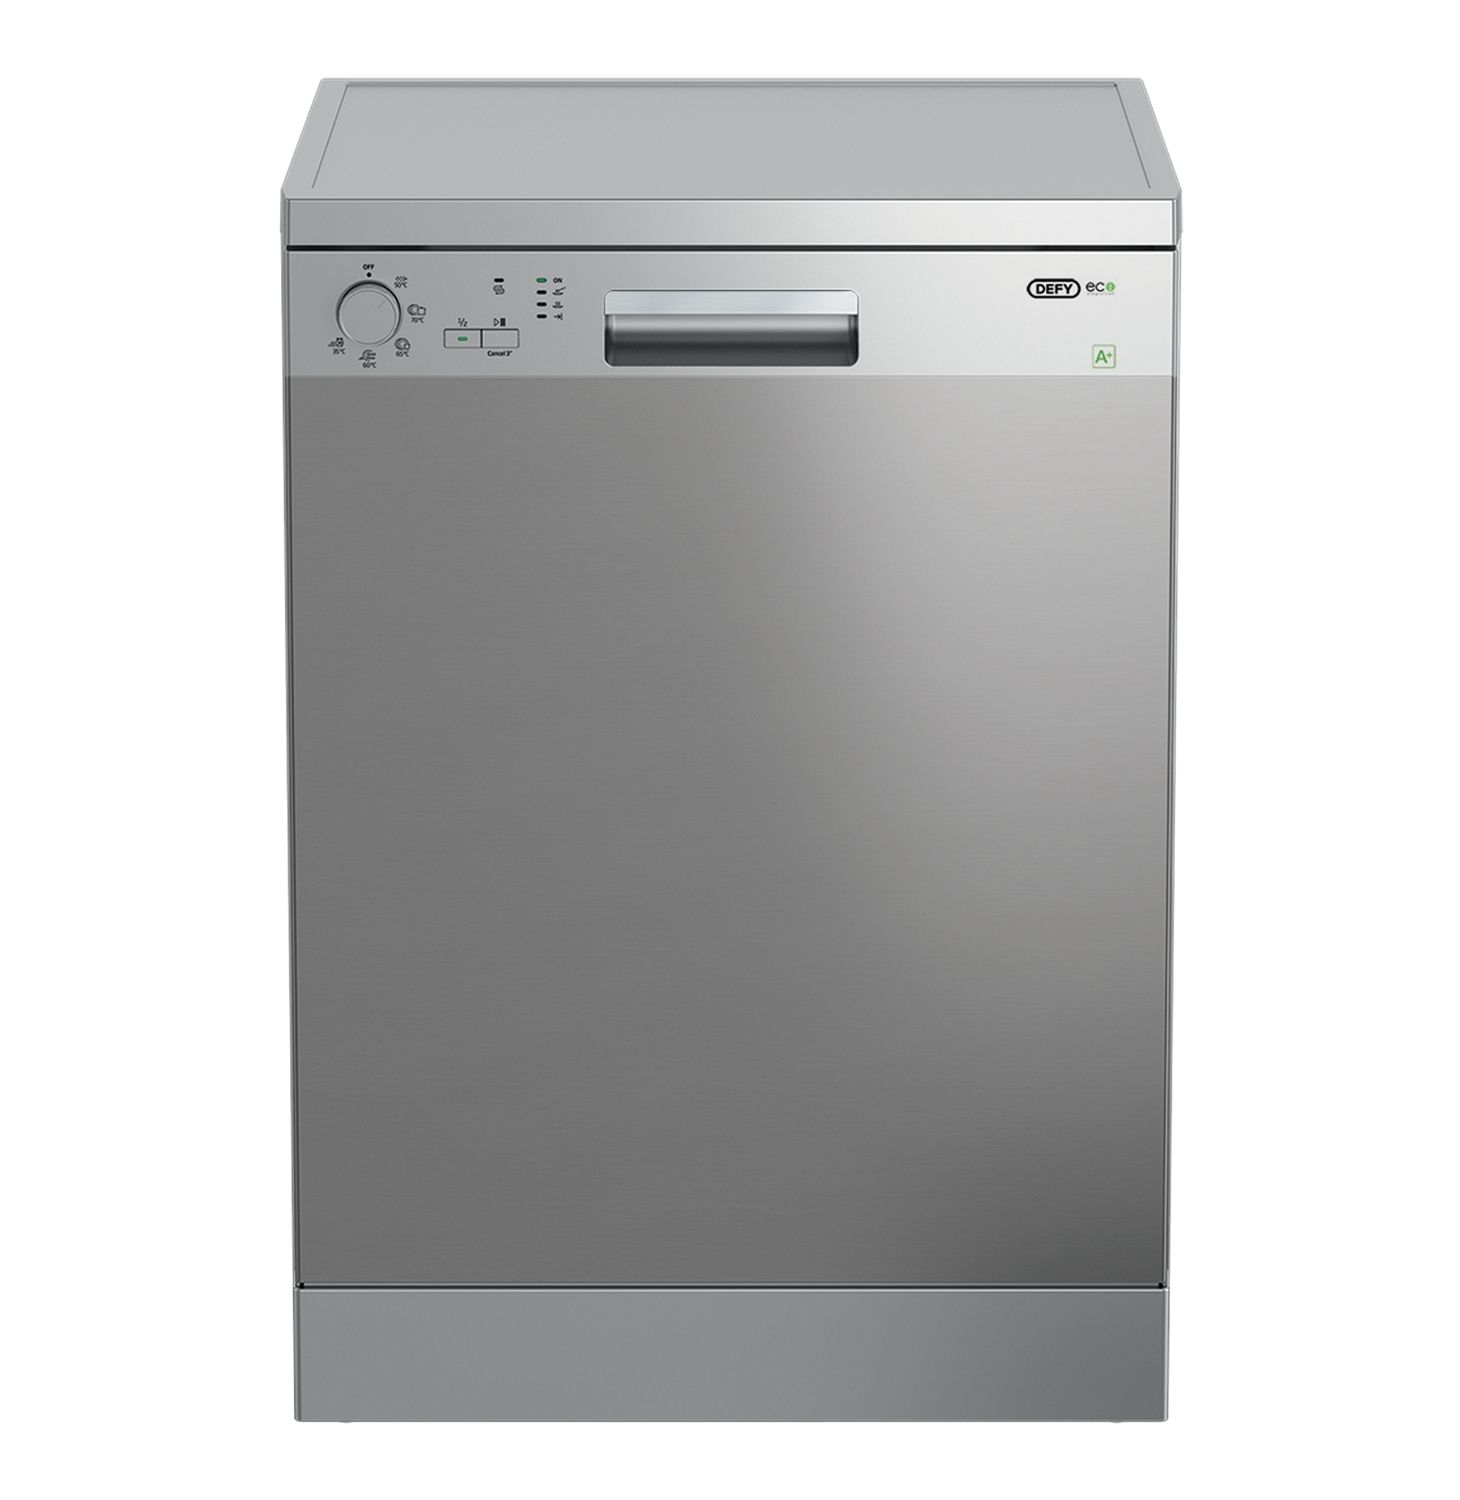 Defy 12 Place Dishwasher Stainless Steel Lowest Prices